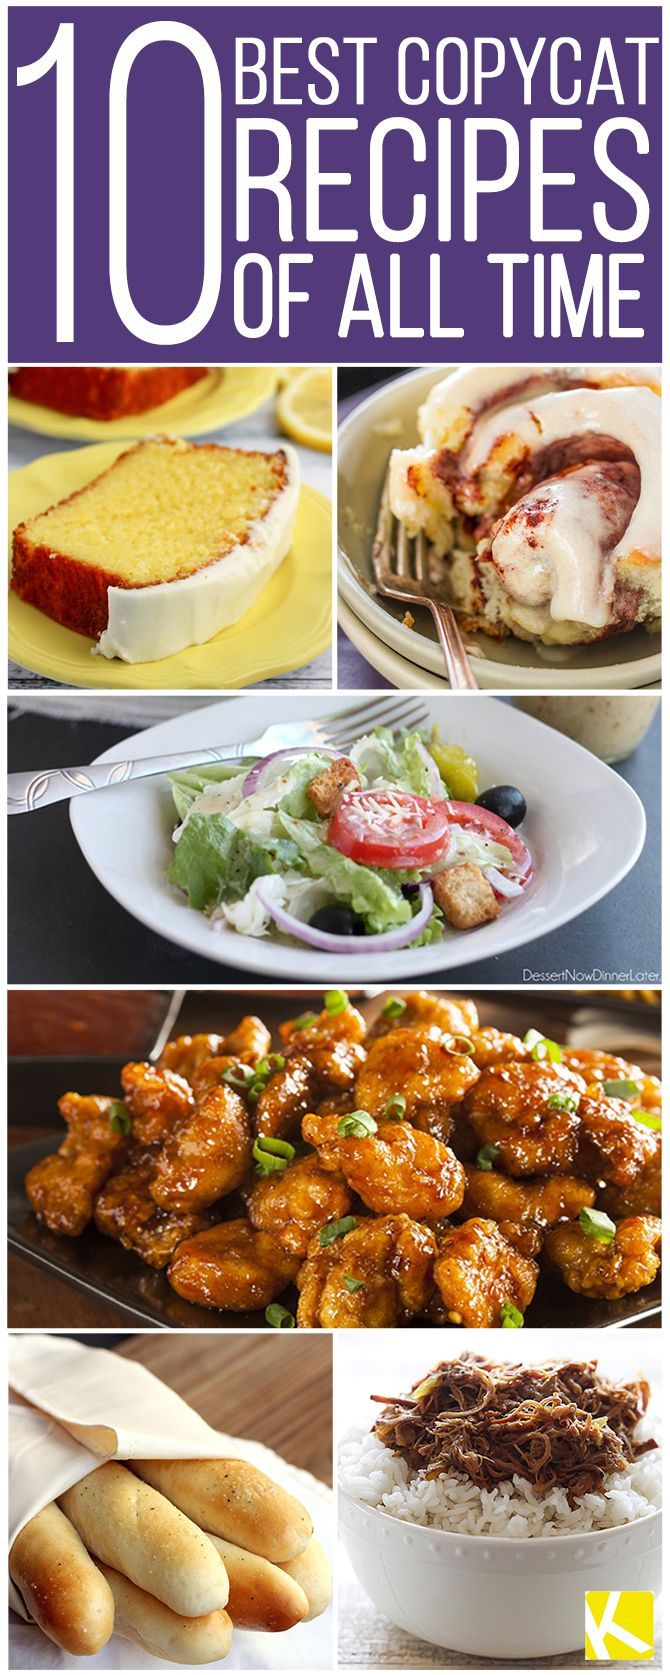 Sweet and spicy bacon wrapped chicken tenders pinterest copycat the 10 best copycat recipes of all time forumfinder Choice Image